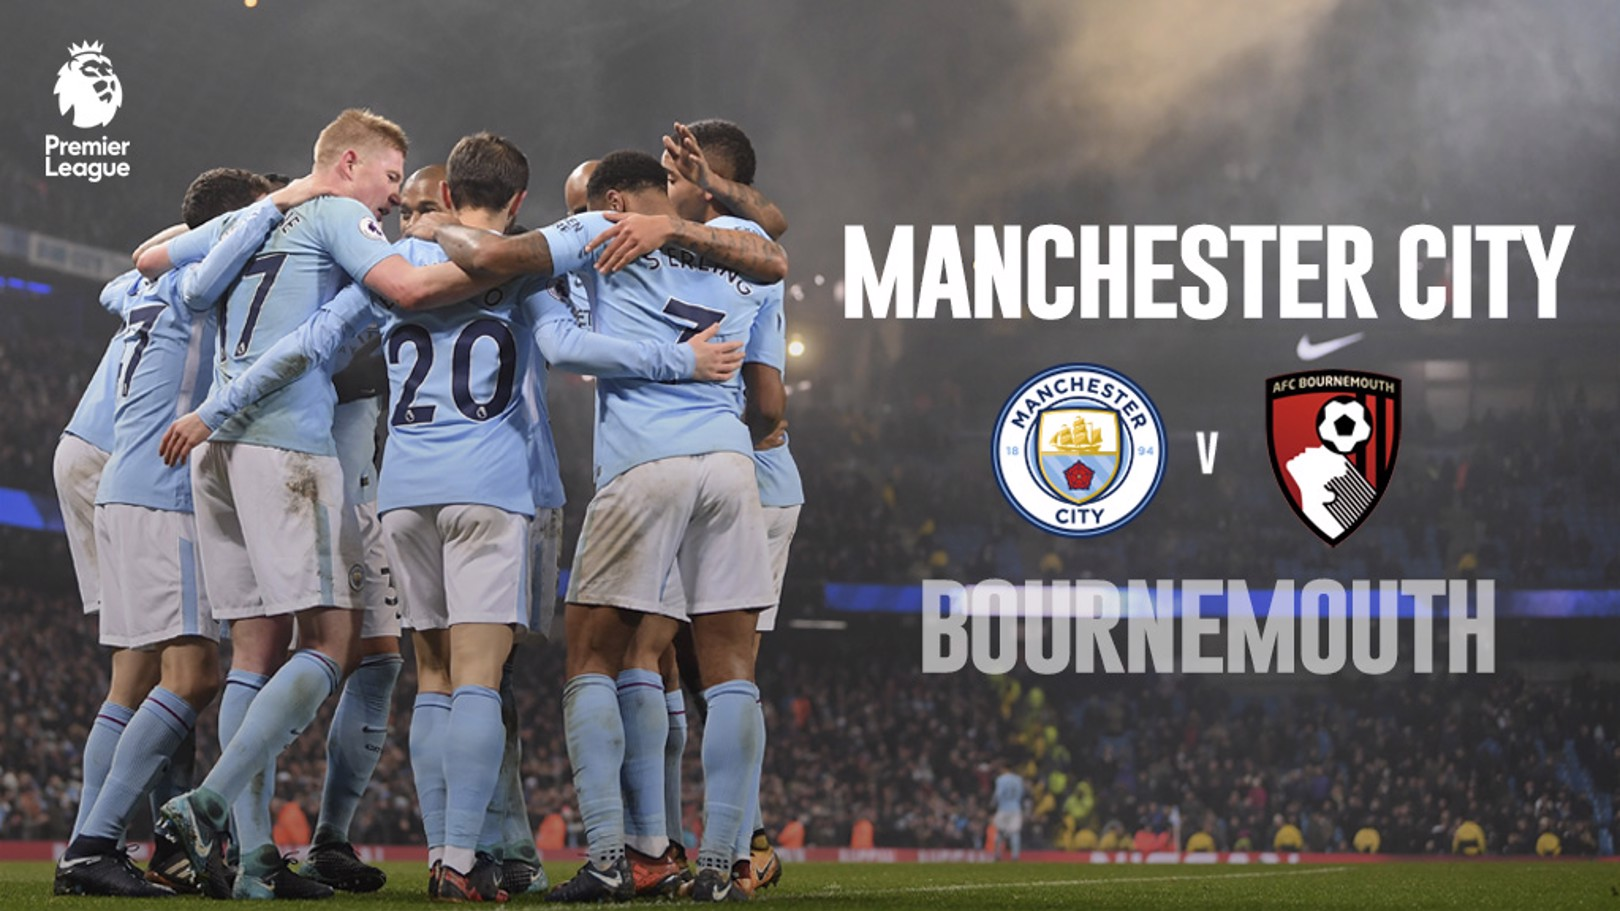 Manchester City - AFC Bournemouth.